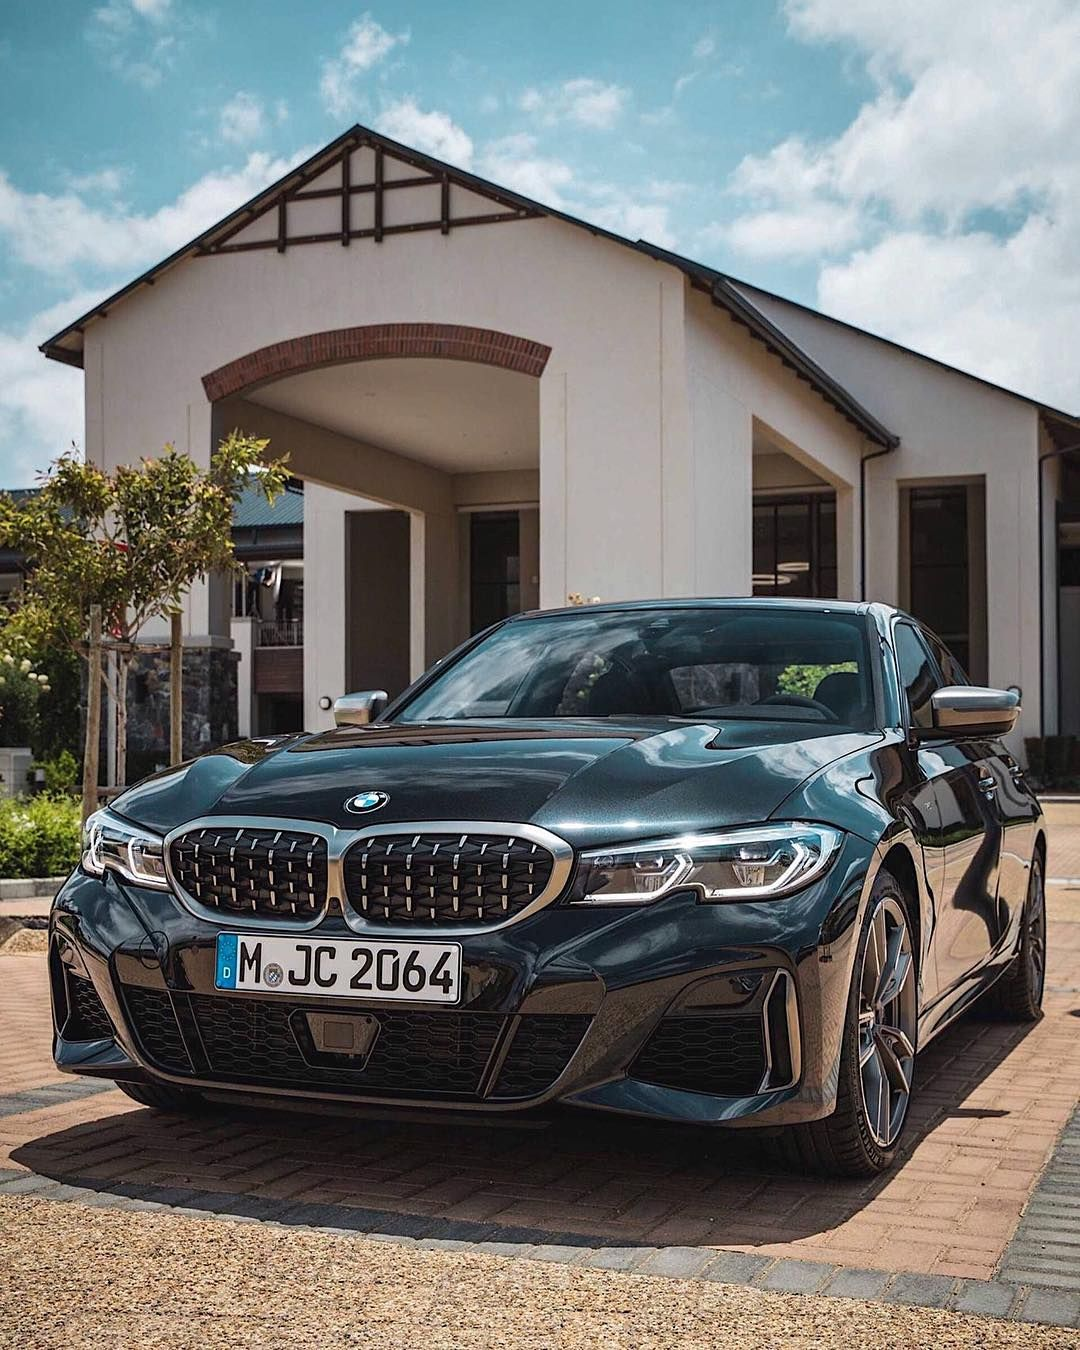 Here S One Of Our Best Live Looks At The New Bmw M340i Xdrive This Will Be The Top G20 3 Series Model Expected To Arrive This Summer Wit Bmw New Bmw